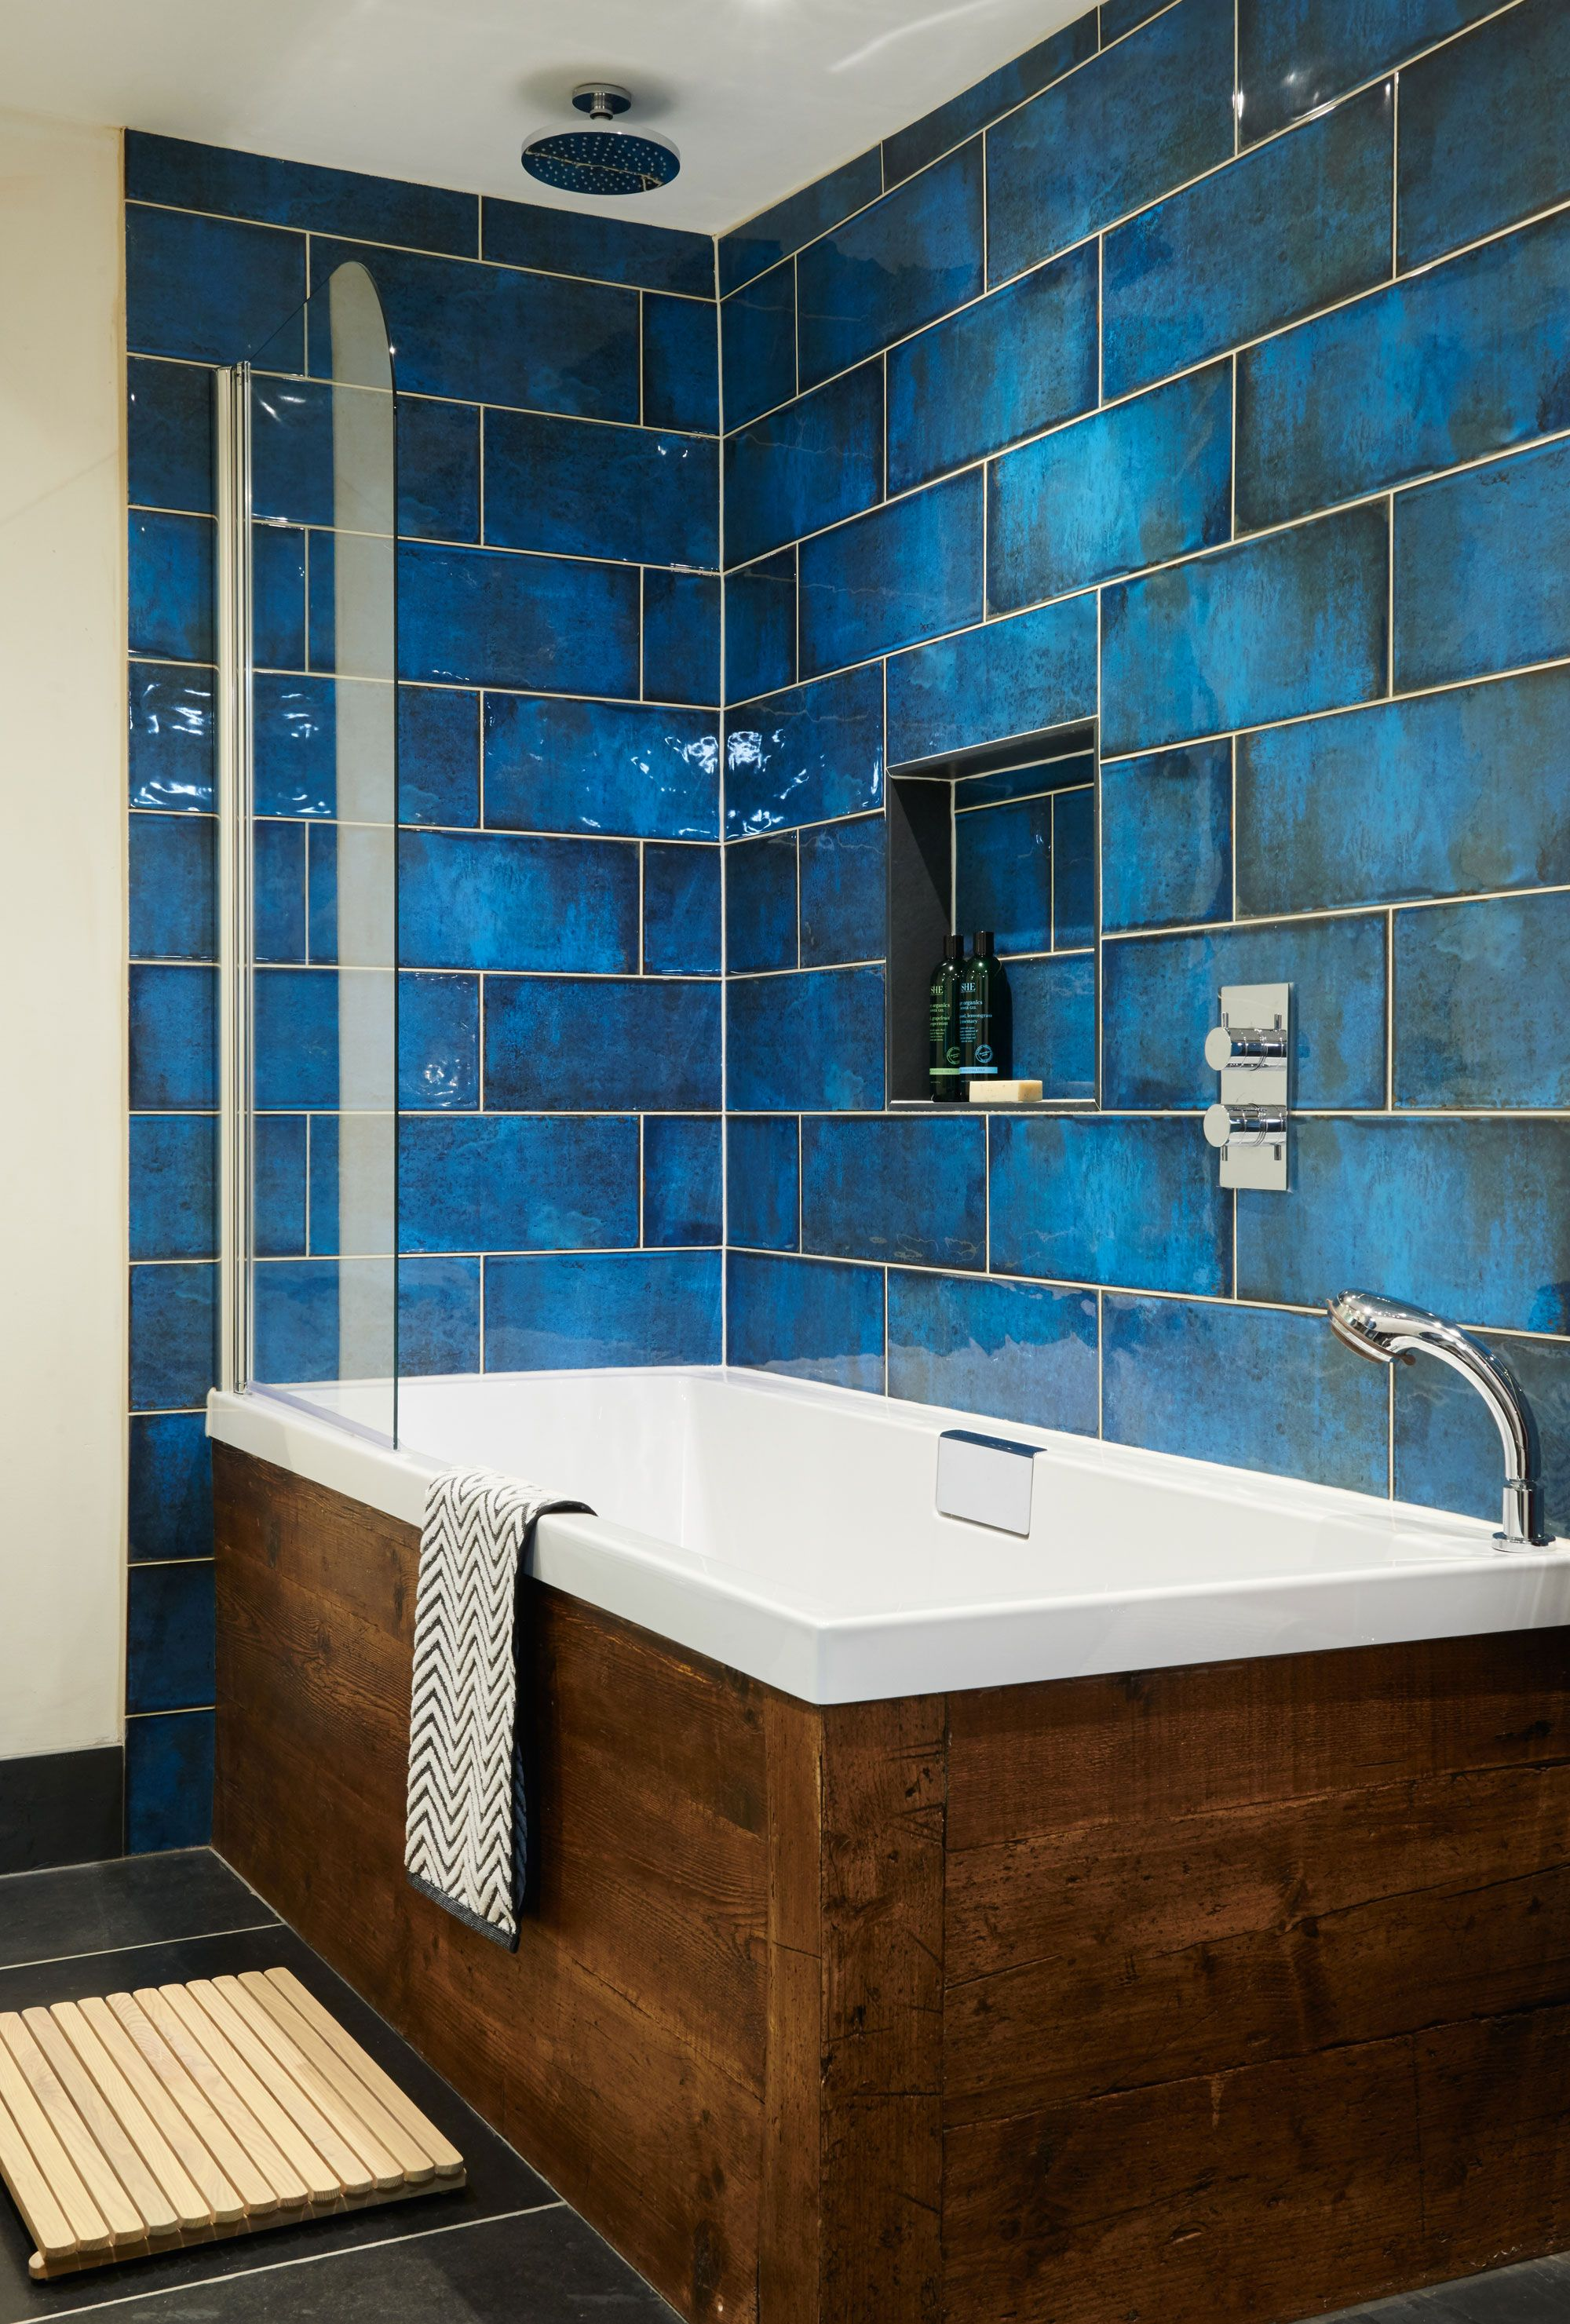 Montblanc Blue Ceramic Tile | Decor - Bathroom | Pinterest | Factors ...